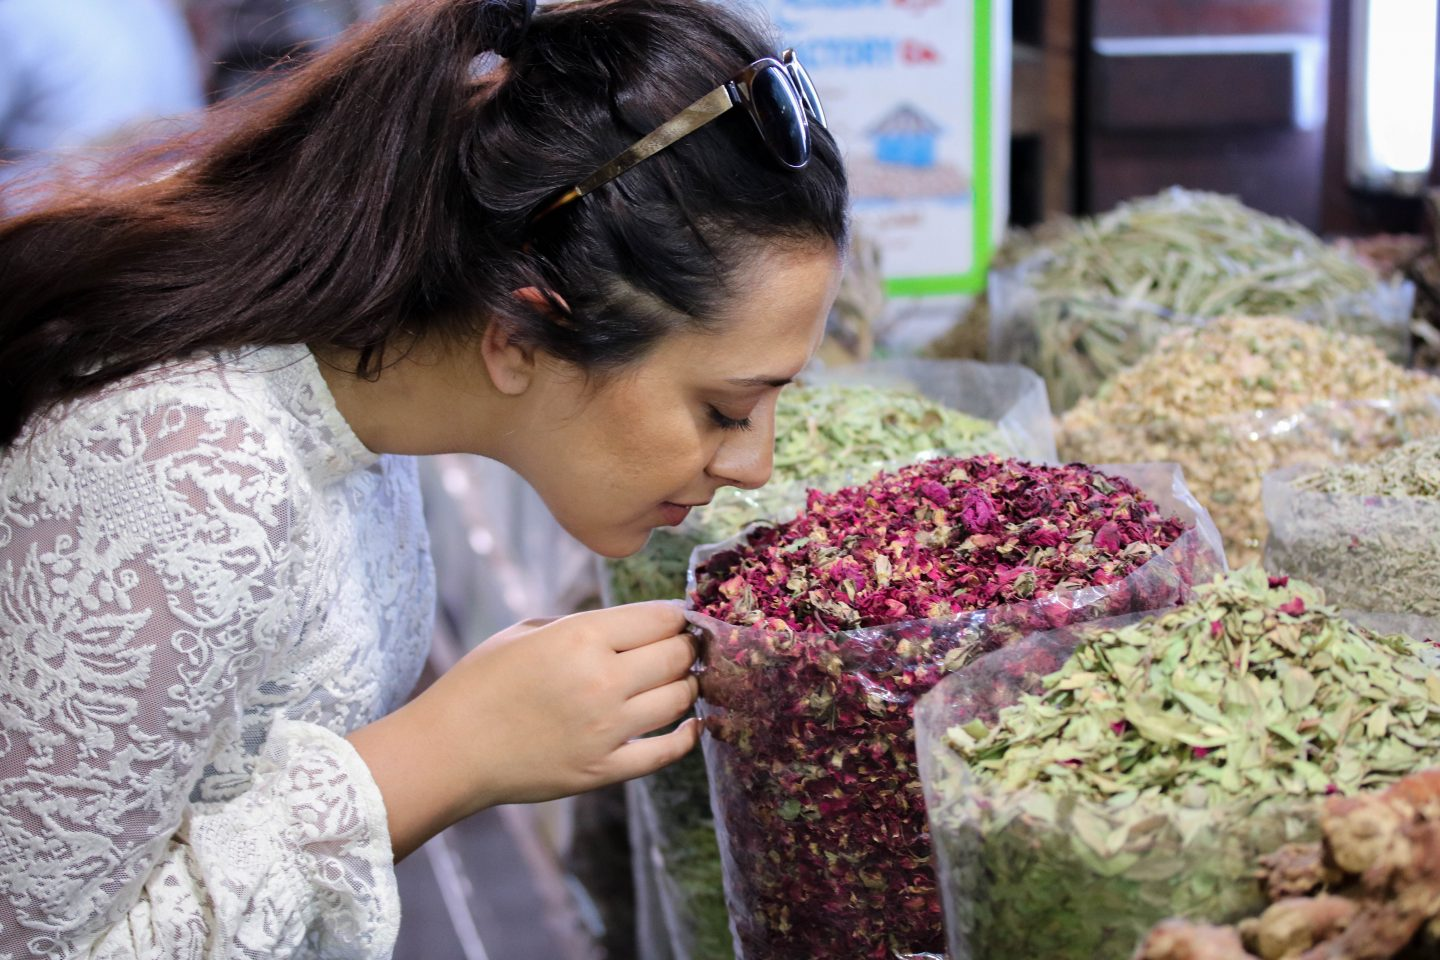 Spice souks - Top 10 Things to do in Dubai - The Lifestyle Enthusiast Blog